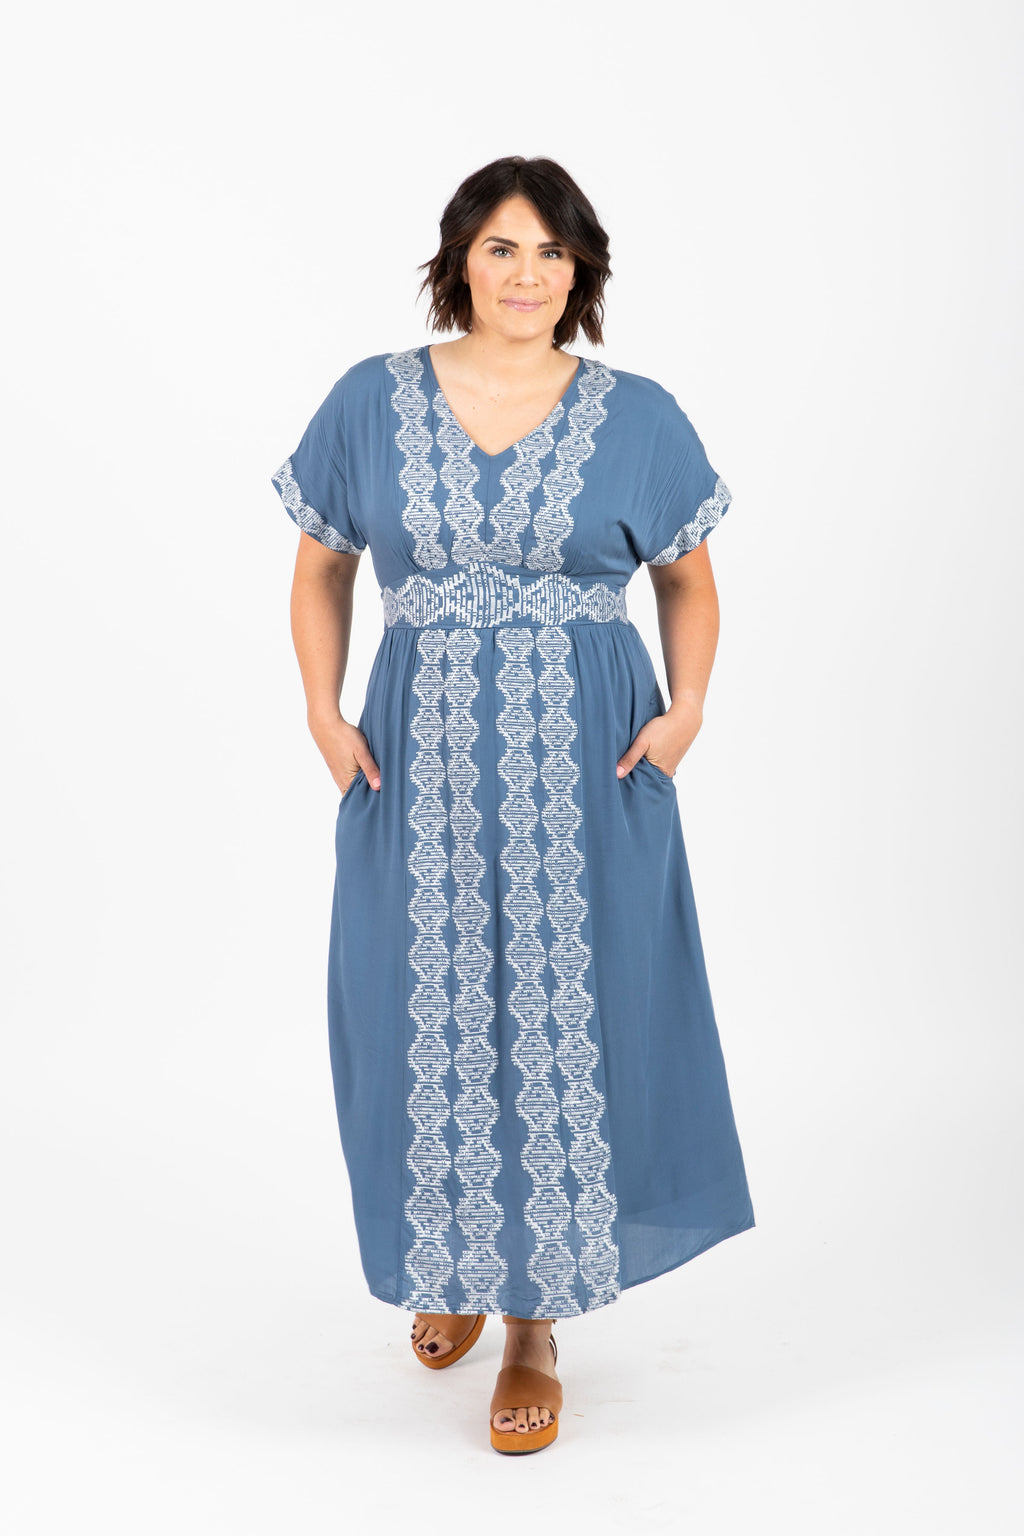 Piper & Scoot: The Nina Embroidered Midi Dress in Blue